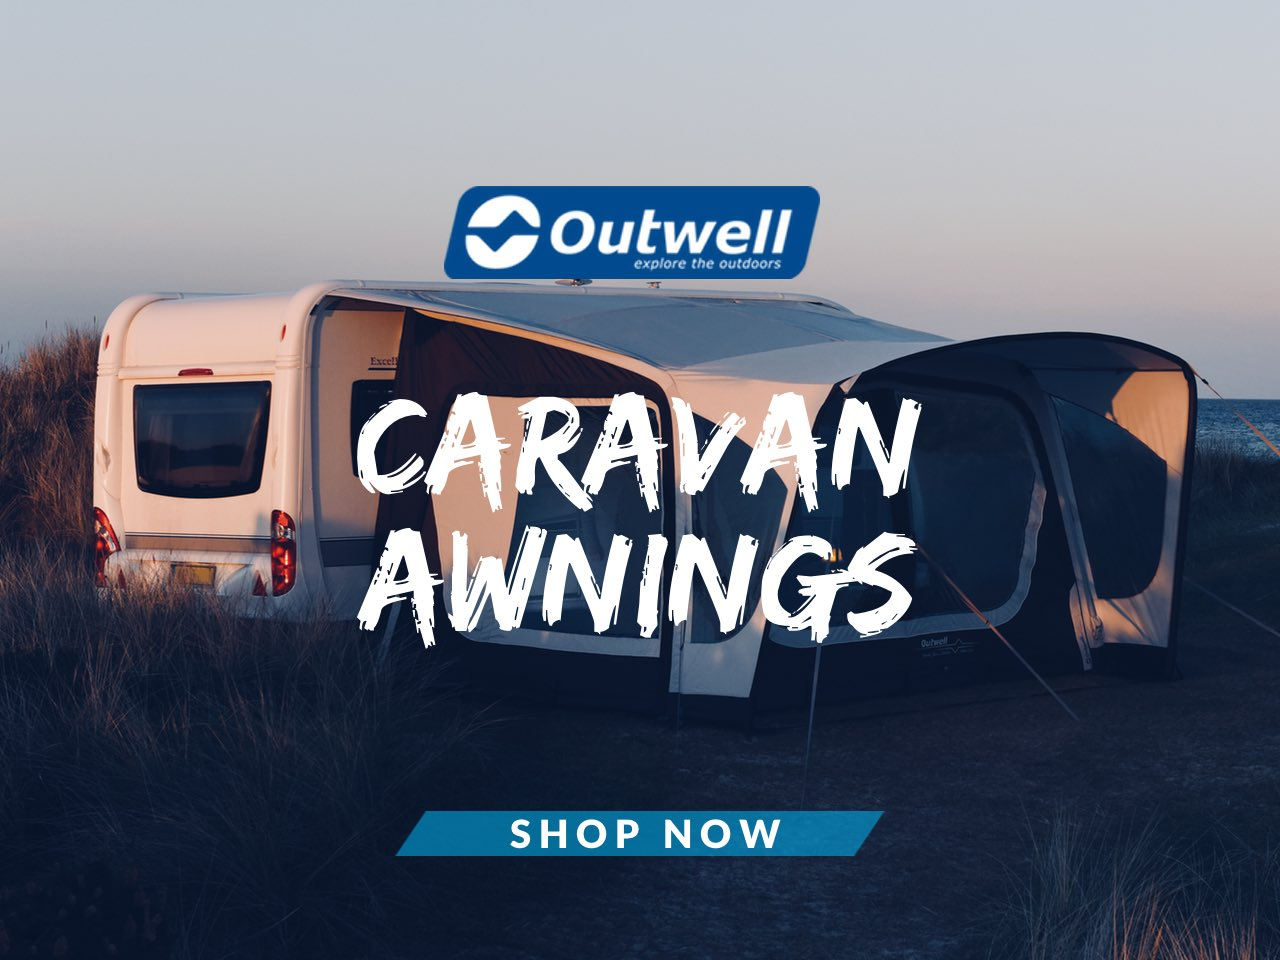 Outwell Caravan Awnings - Shop Now